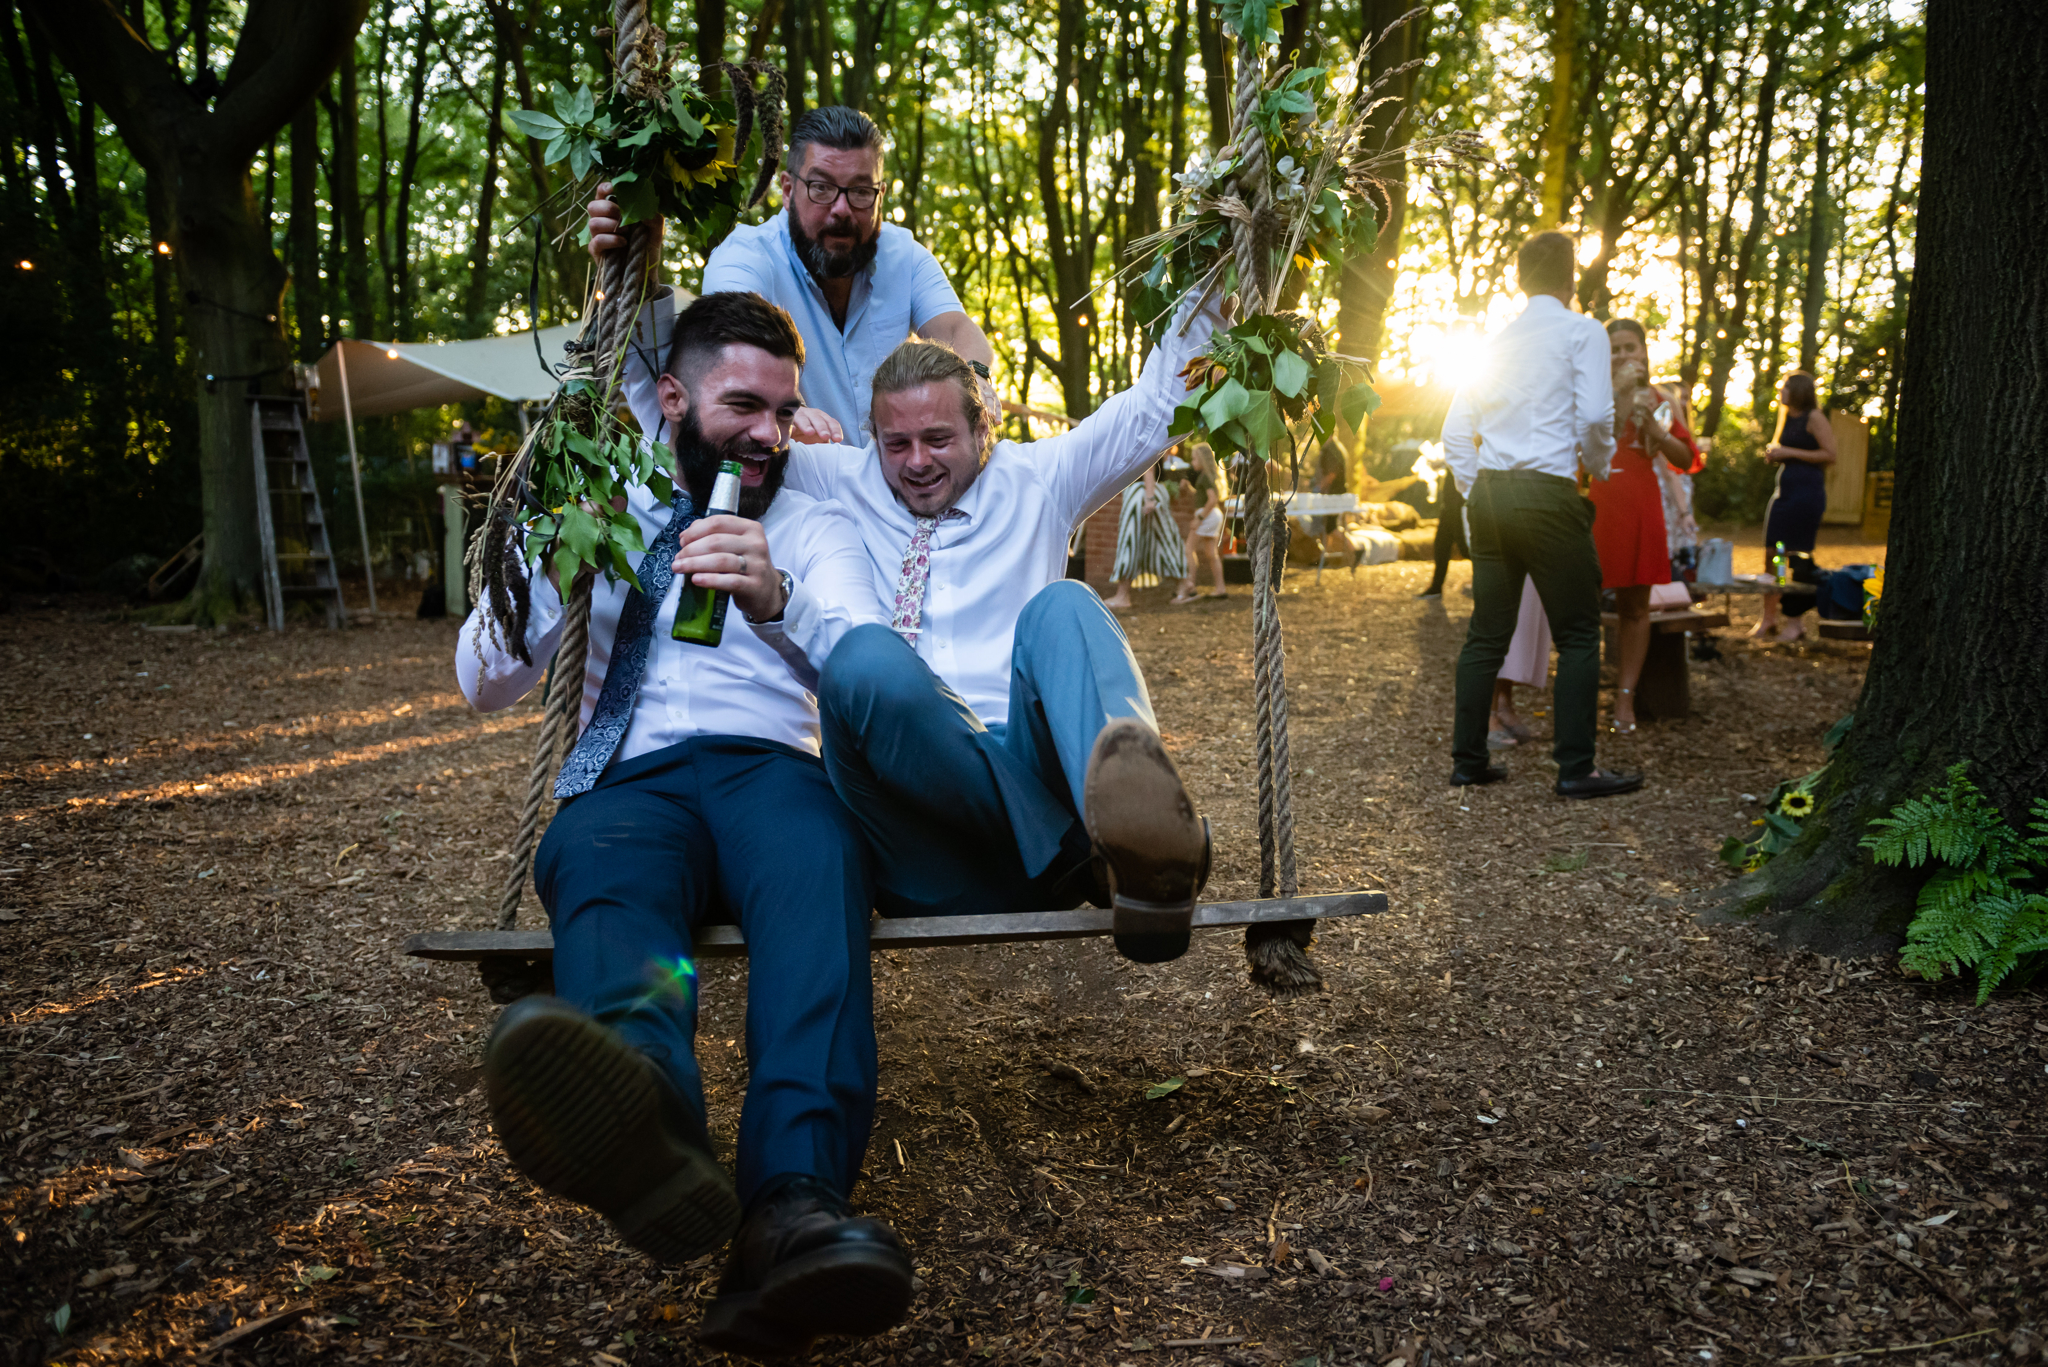 Guests playing on the swing at Woodland Weddings